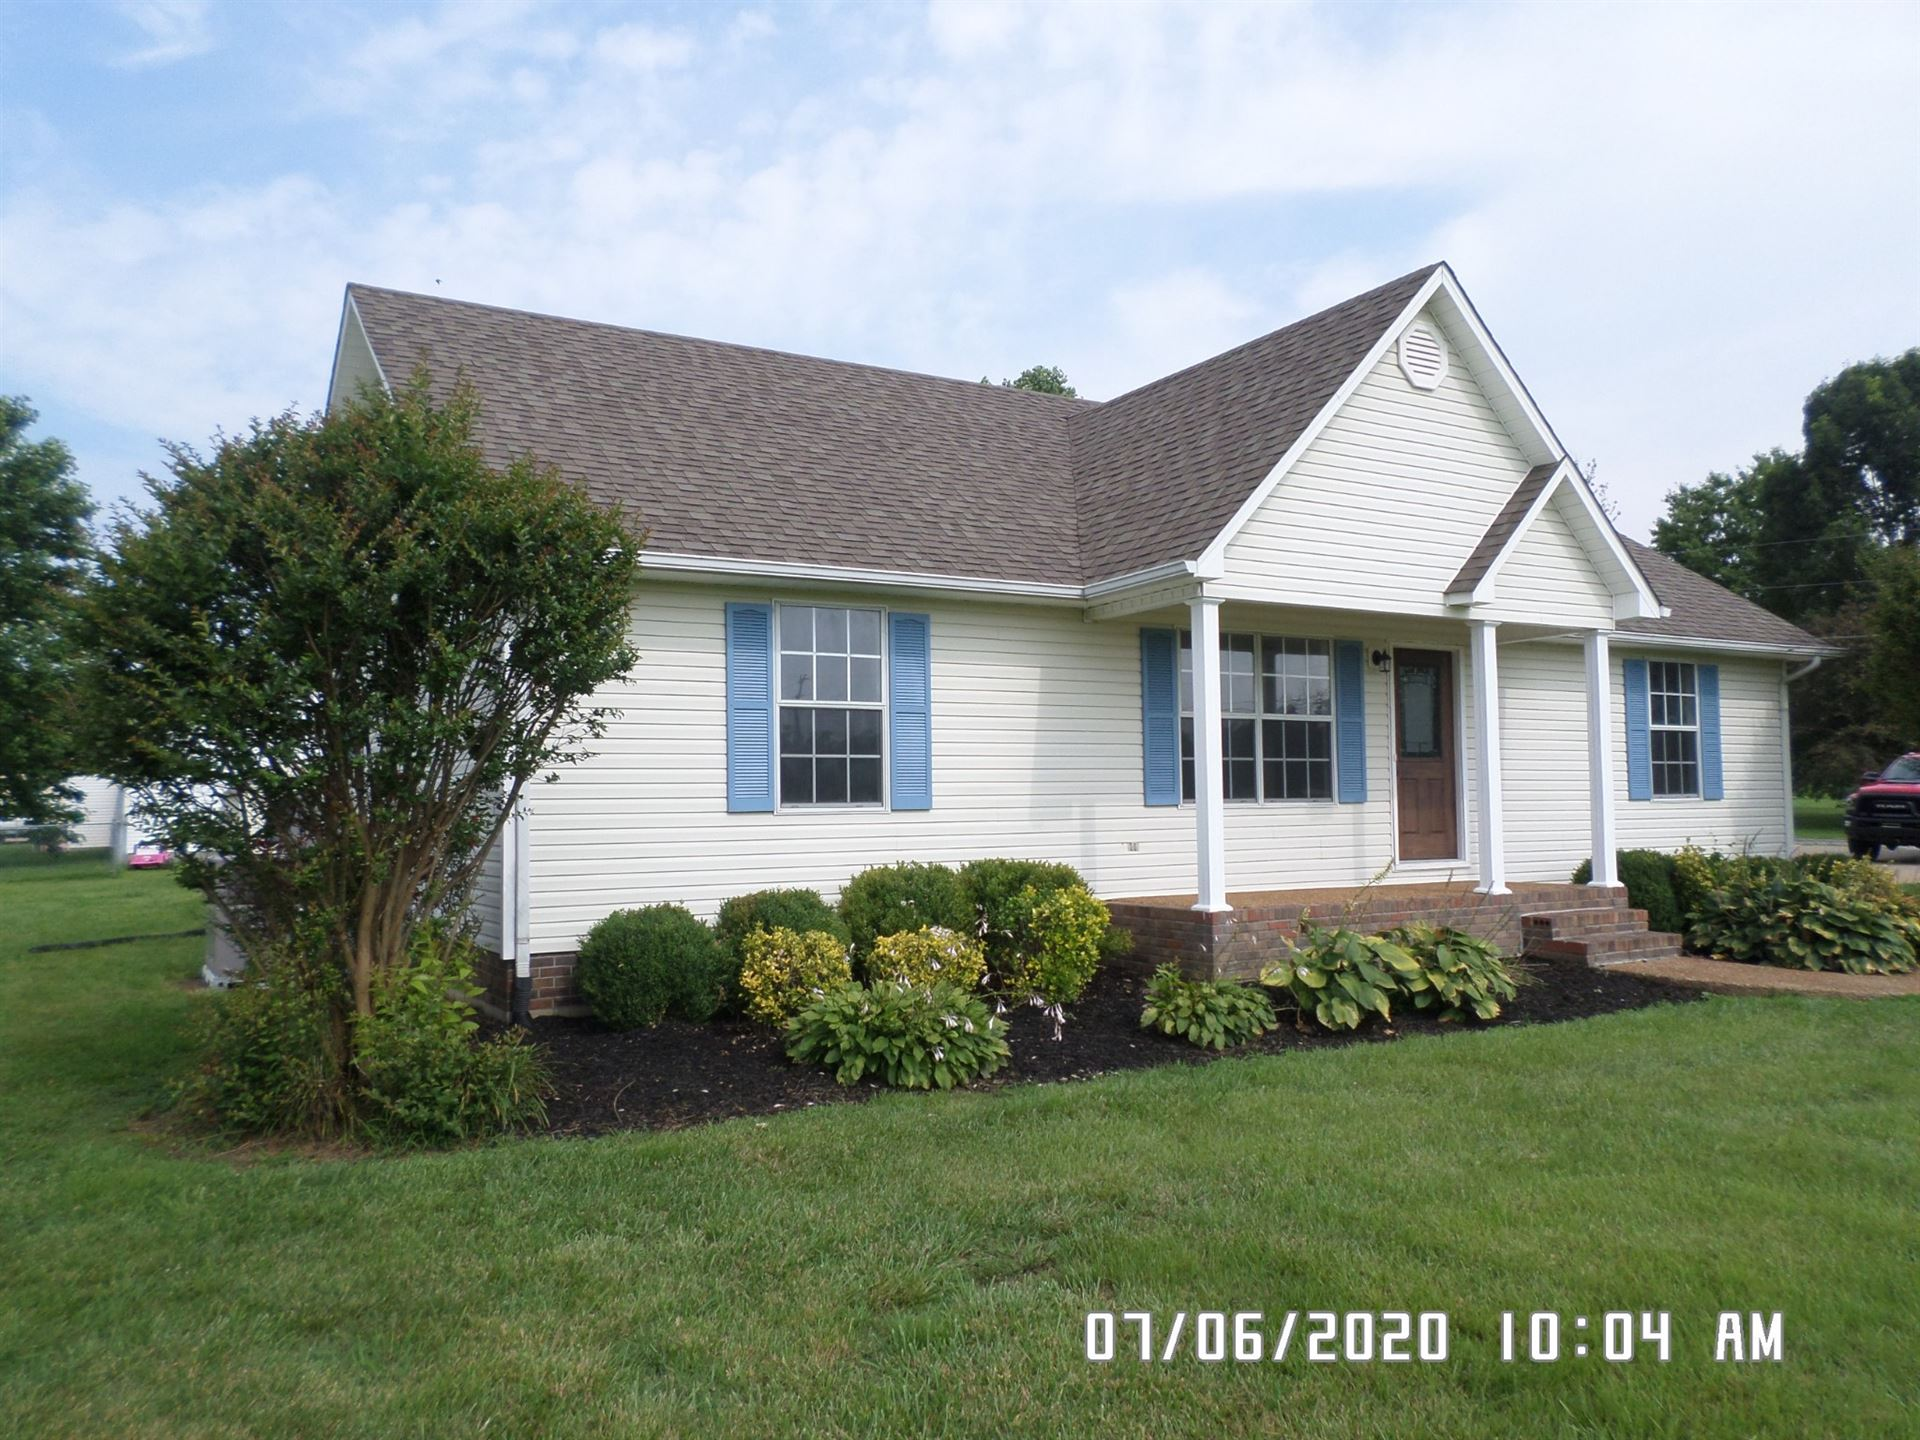 Photo of 37 Community Rd, Lawrenceburg, TN 38464 (MLS # 2166847)